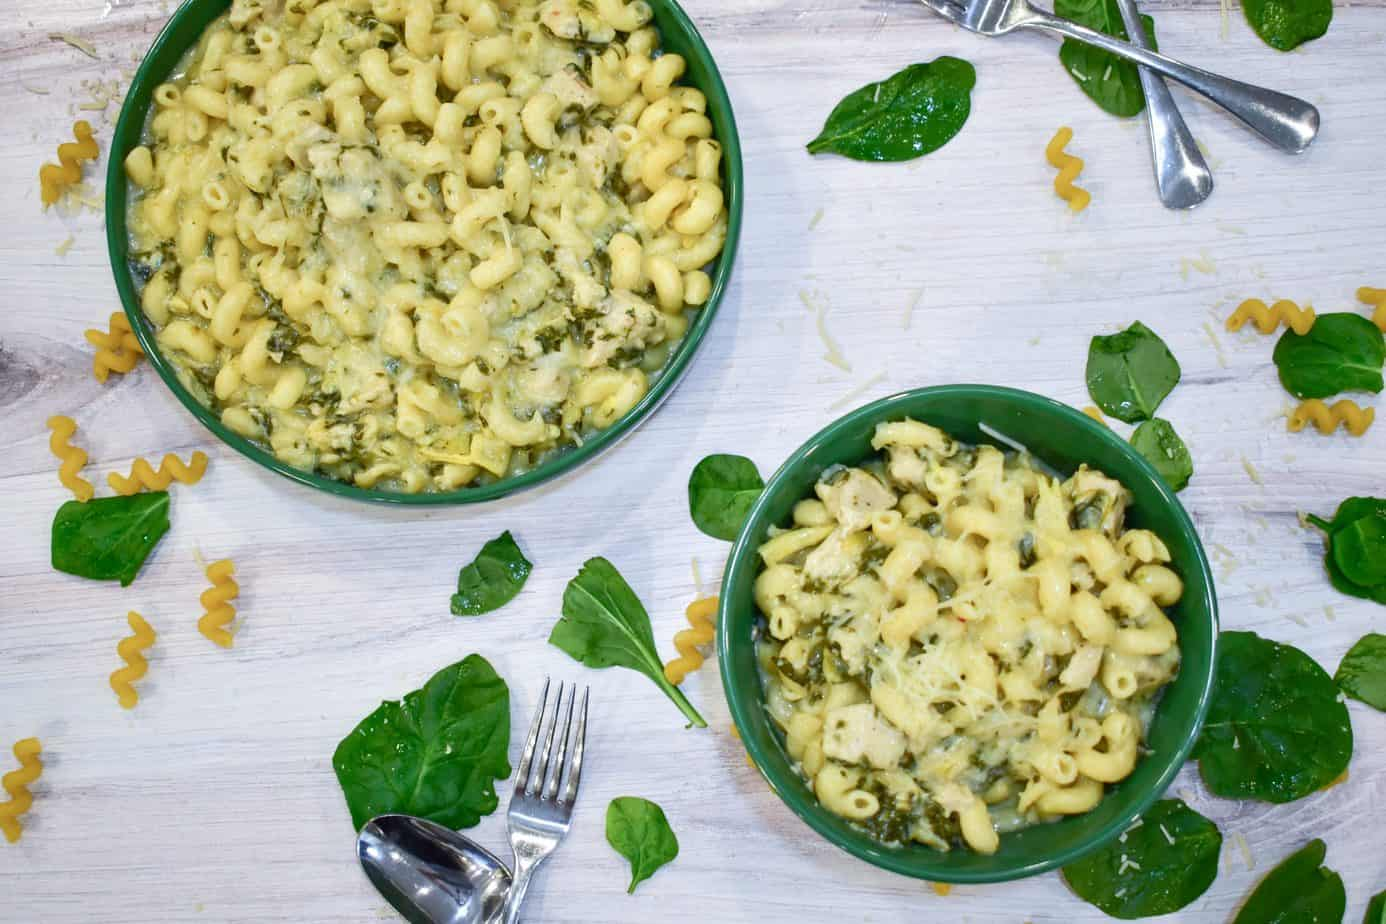 Photo of Instant Pot Chicken, Spinach and Artichoke Pasta